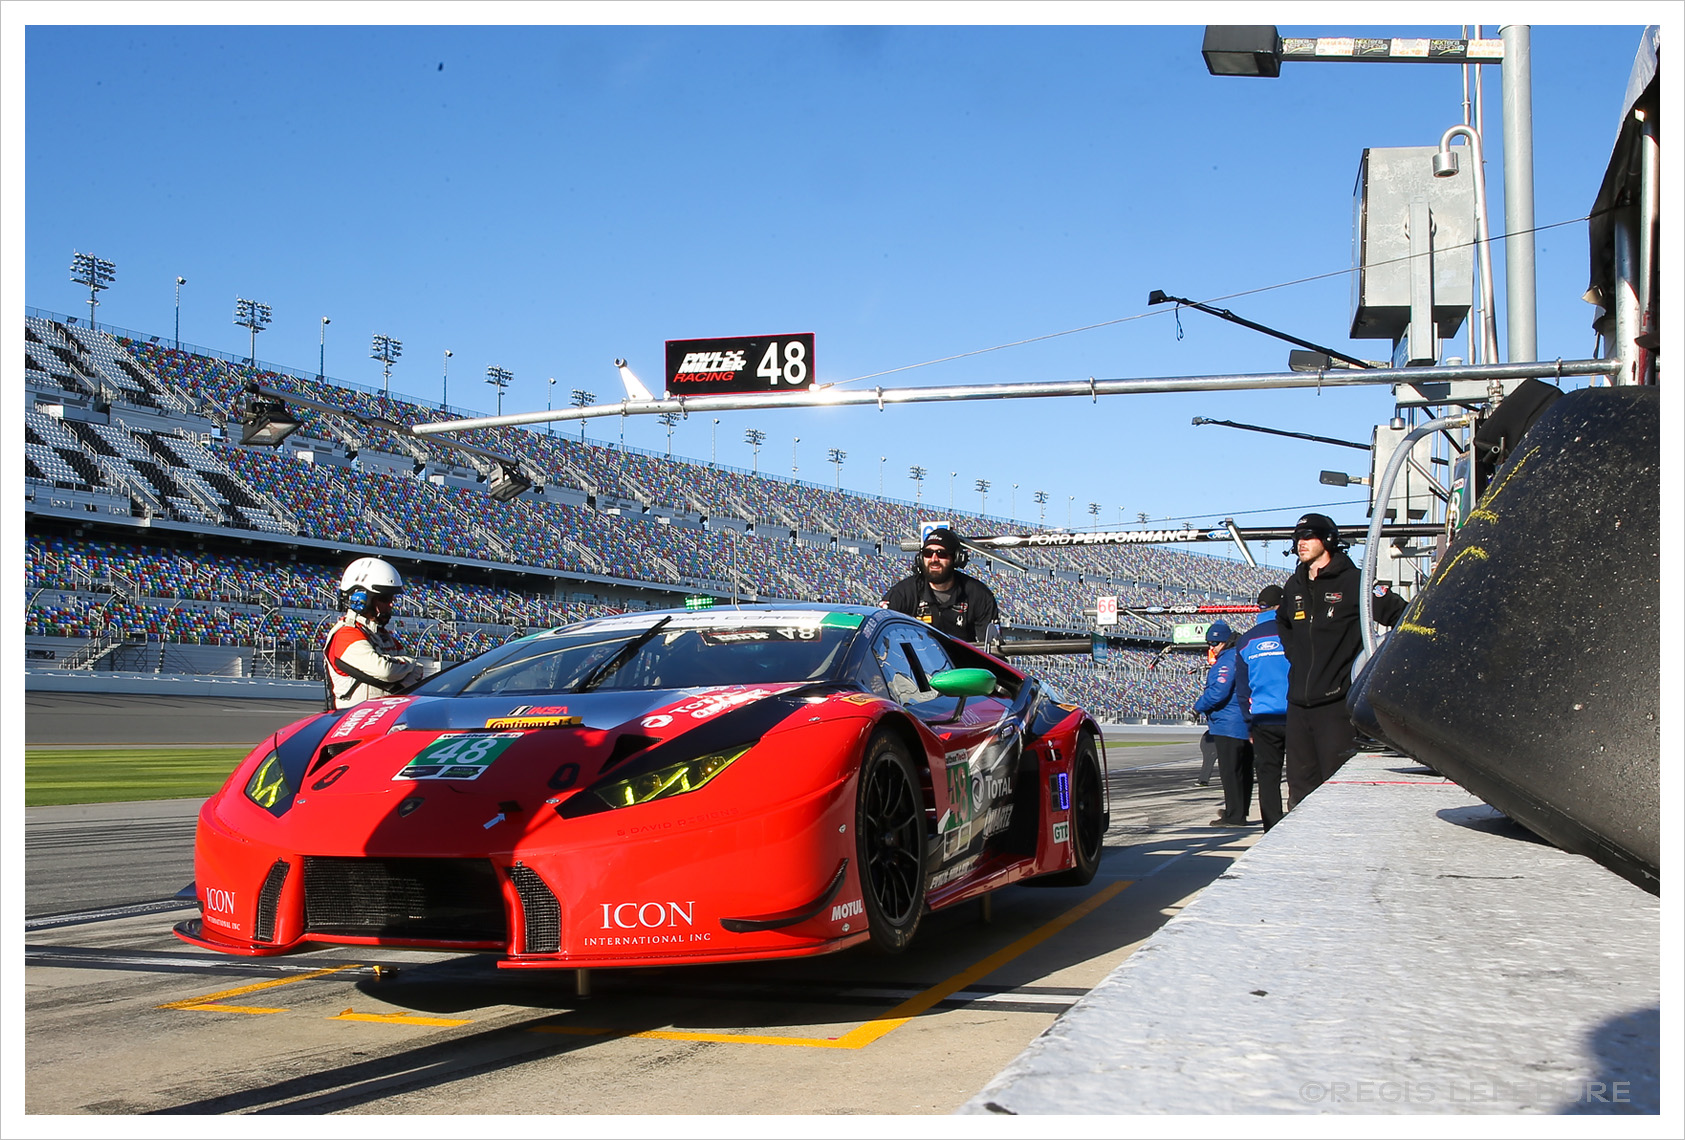 2018 Roar B4 the 24, Daytona FL